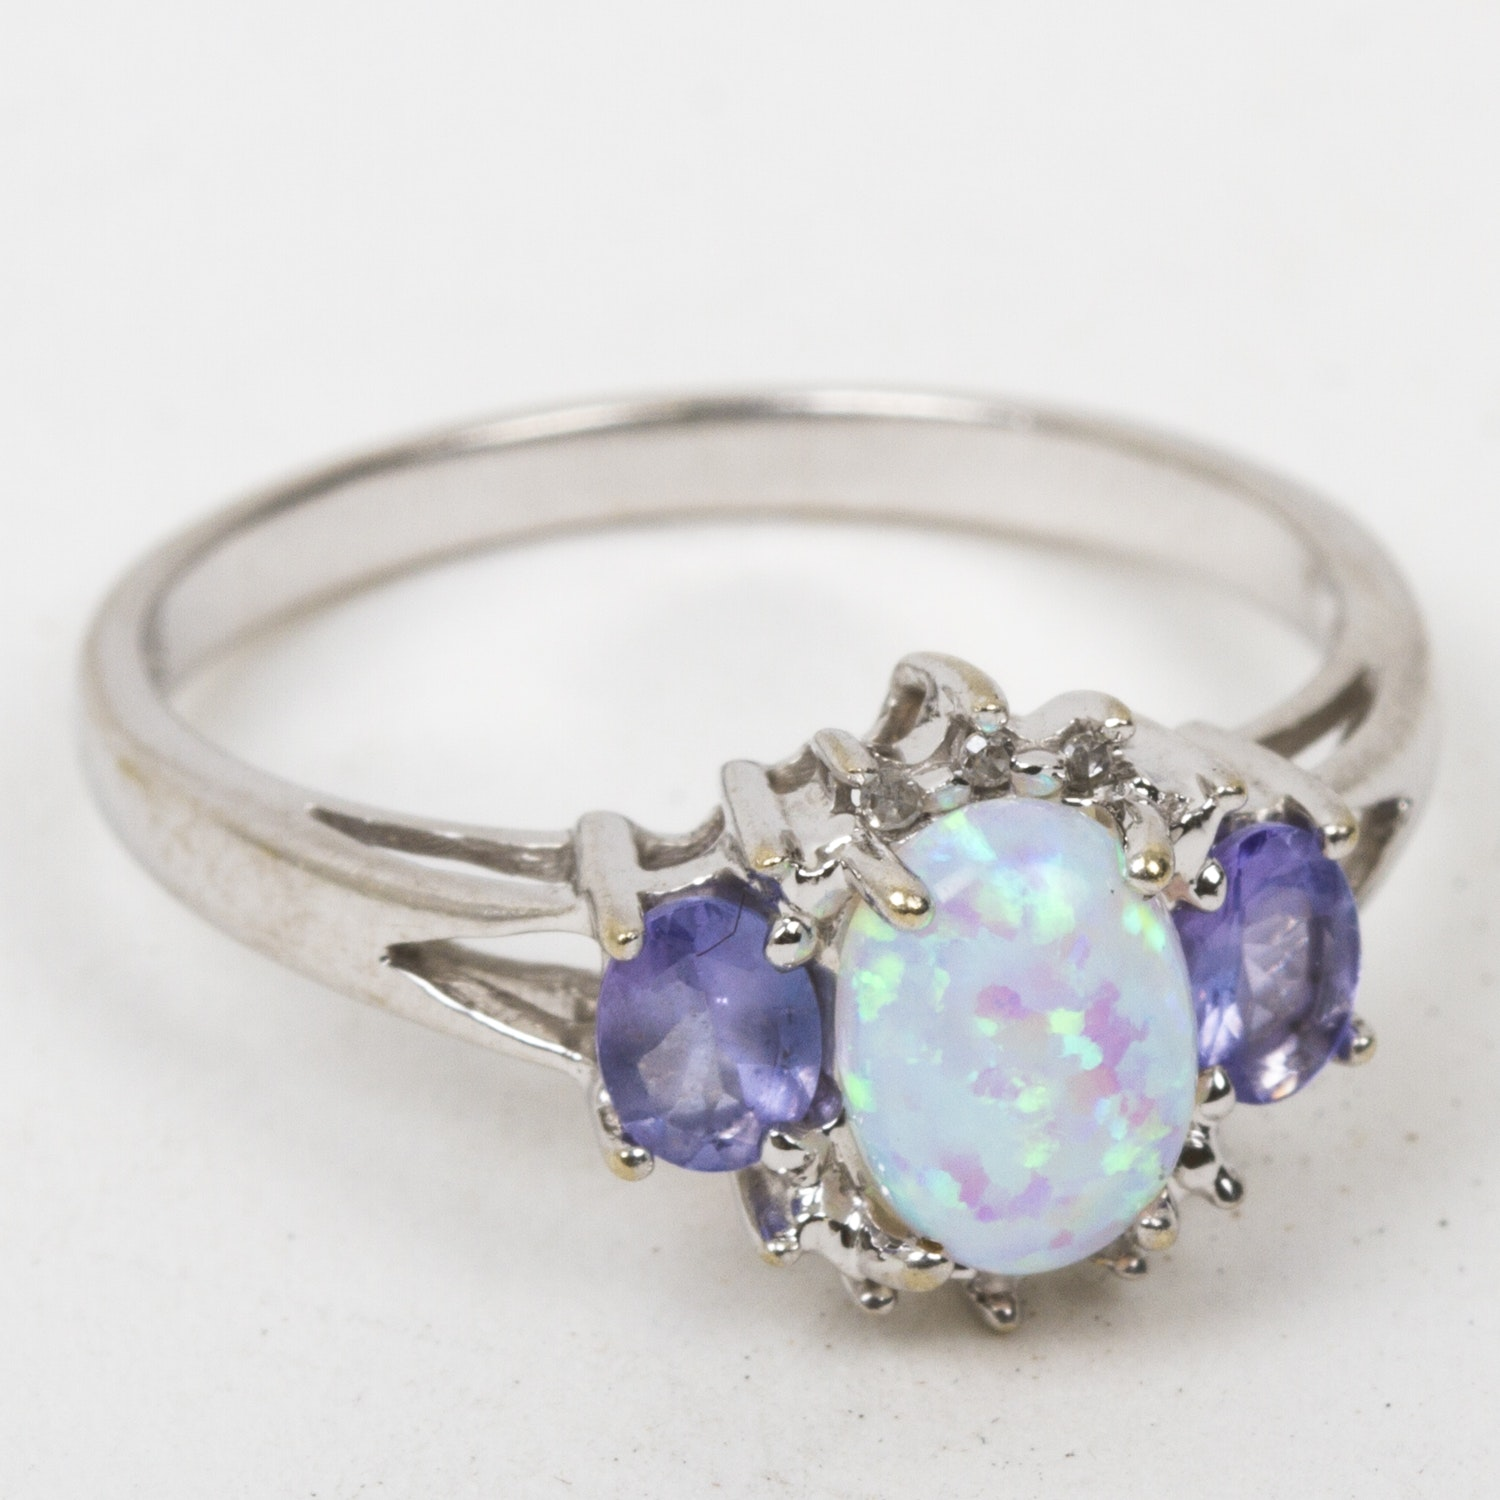 10K White Gold, Synthetic Opal, Diamond, and Iolite Ring